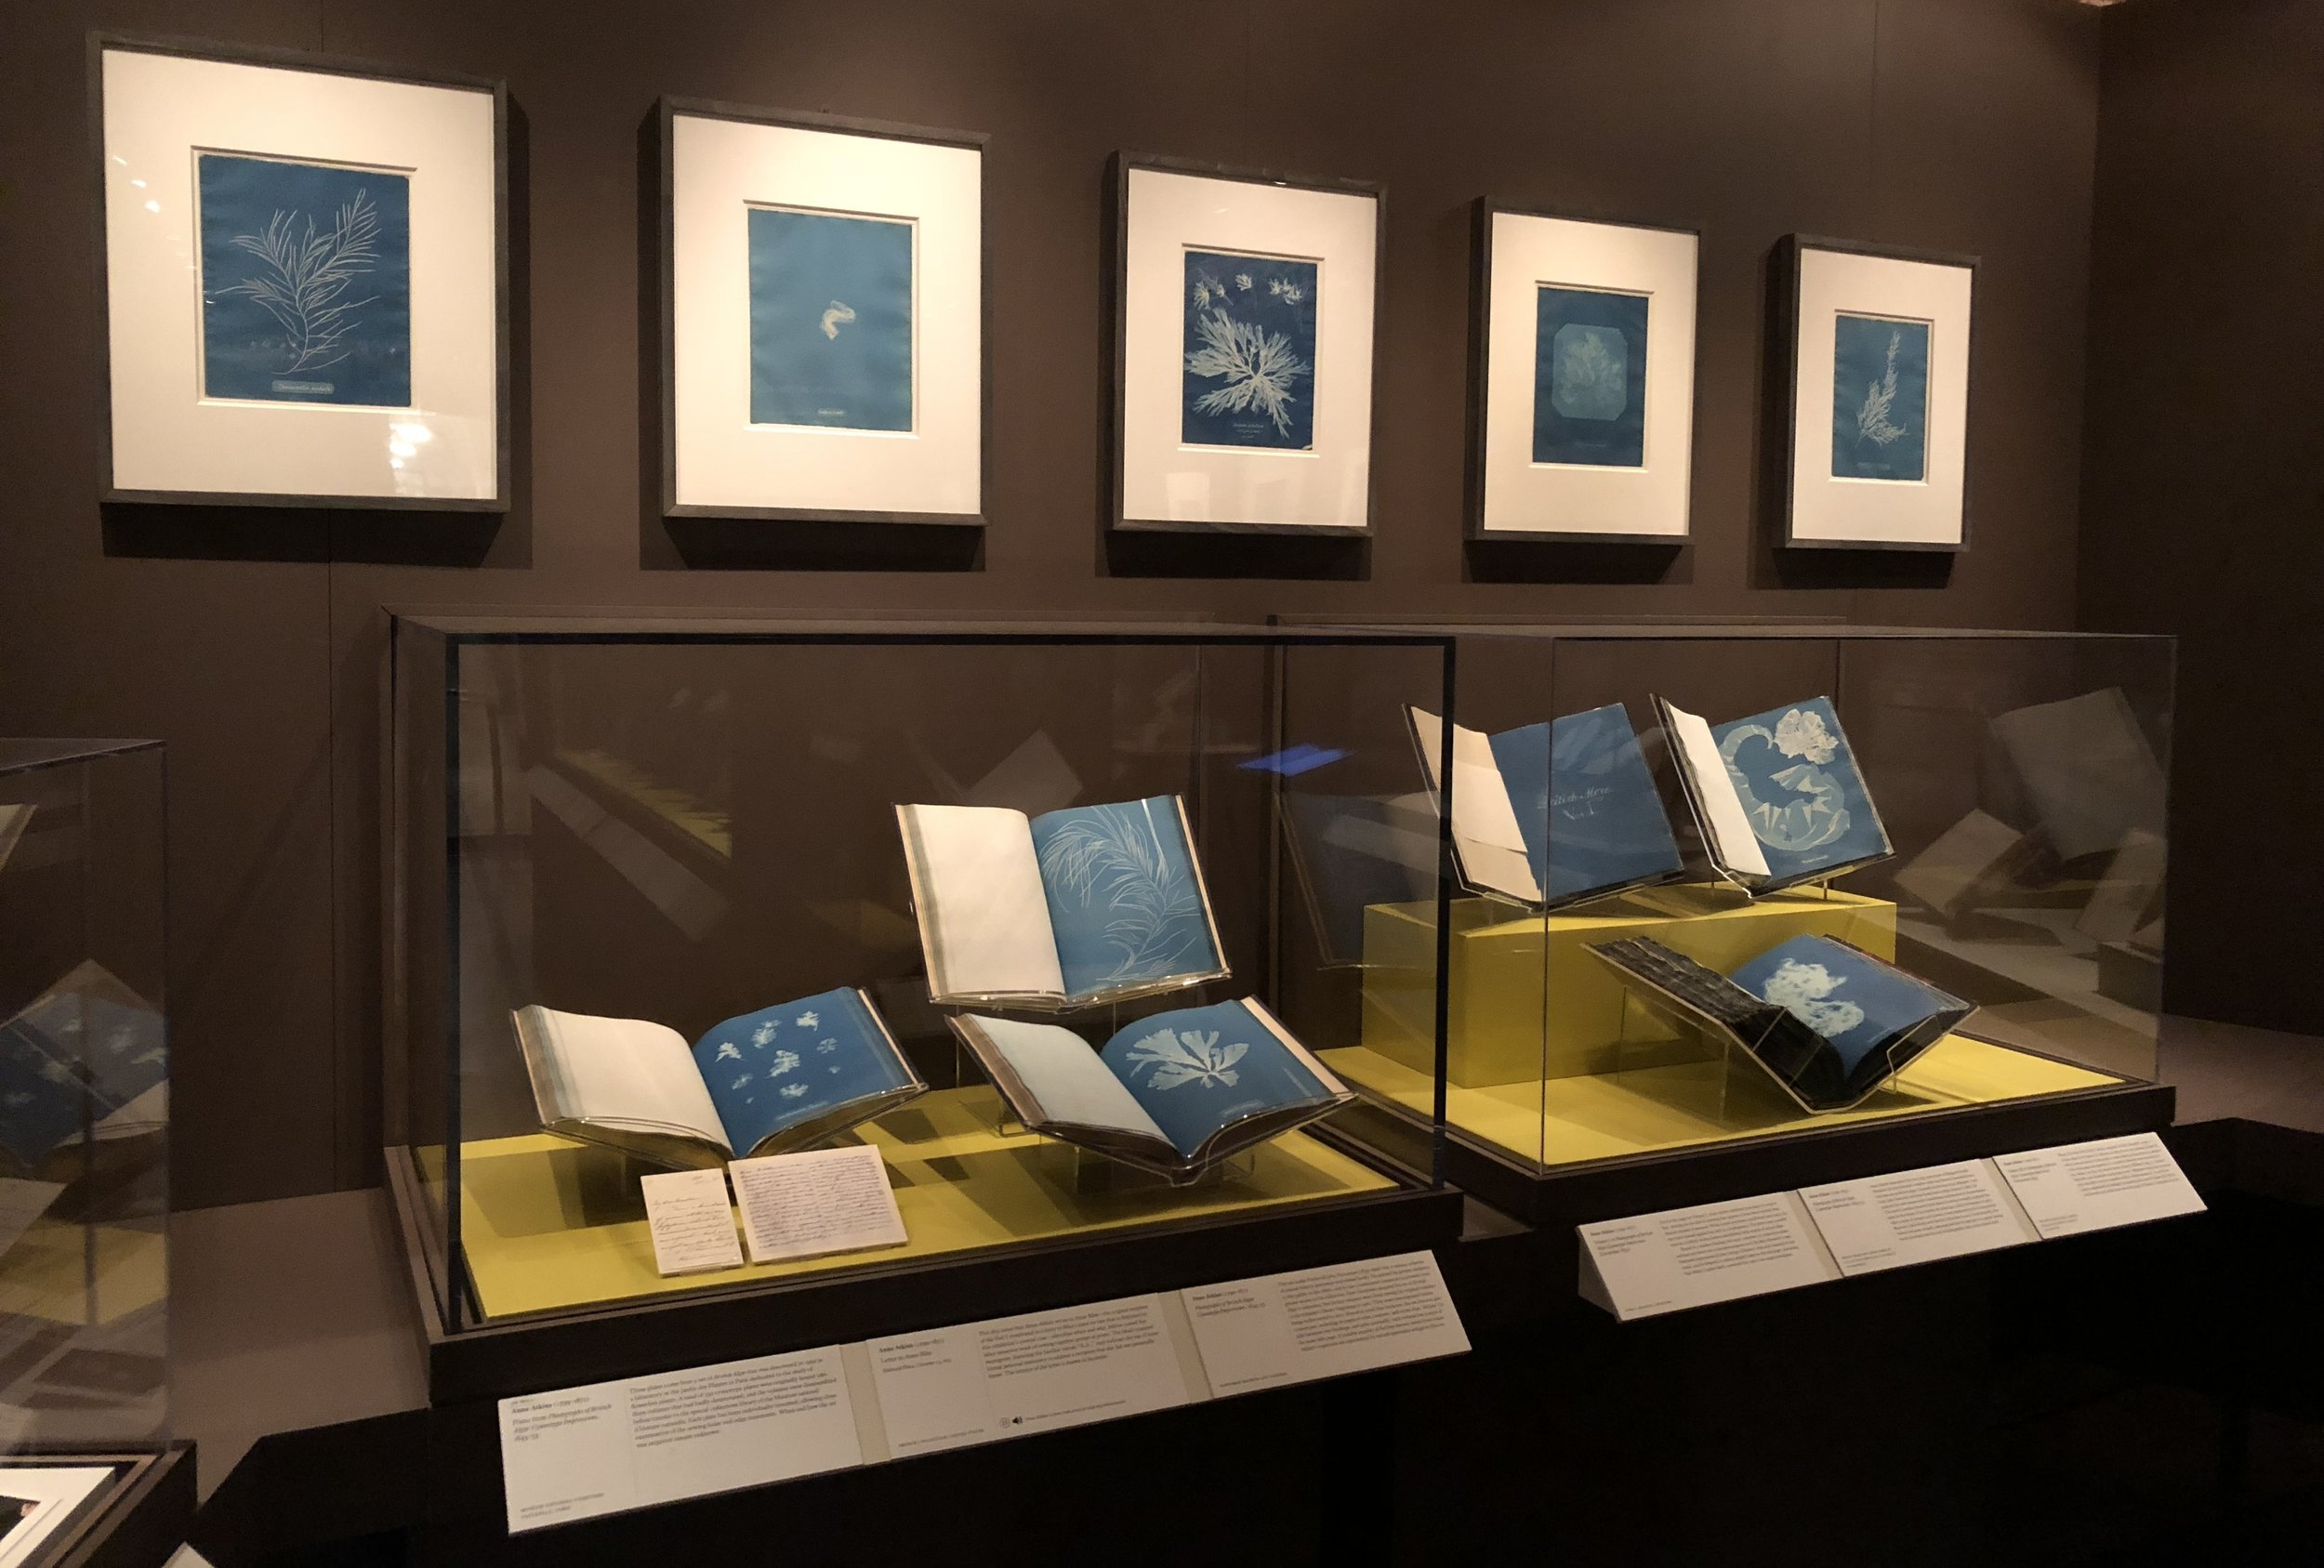 Installation View,  Blueprints: The Pioneering Photgraphs of Anna Atkins